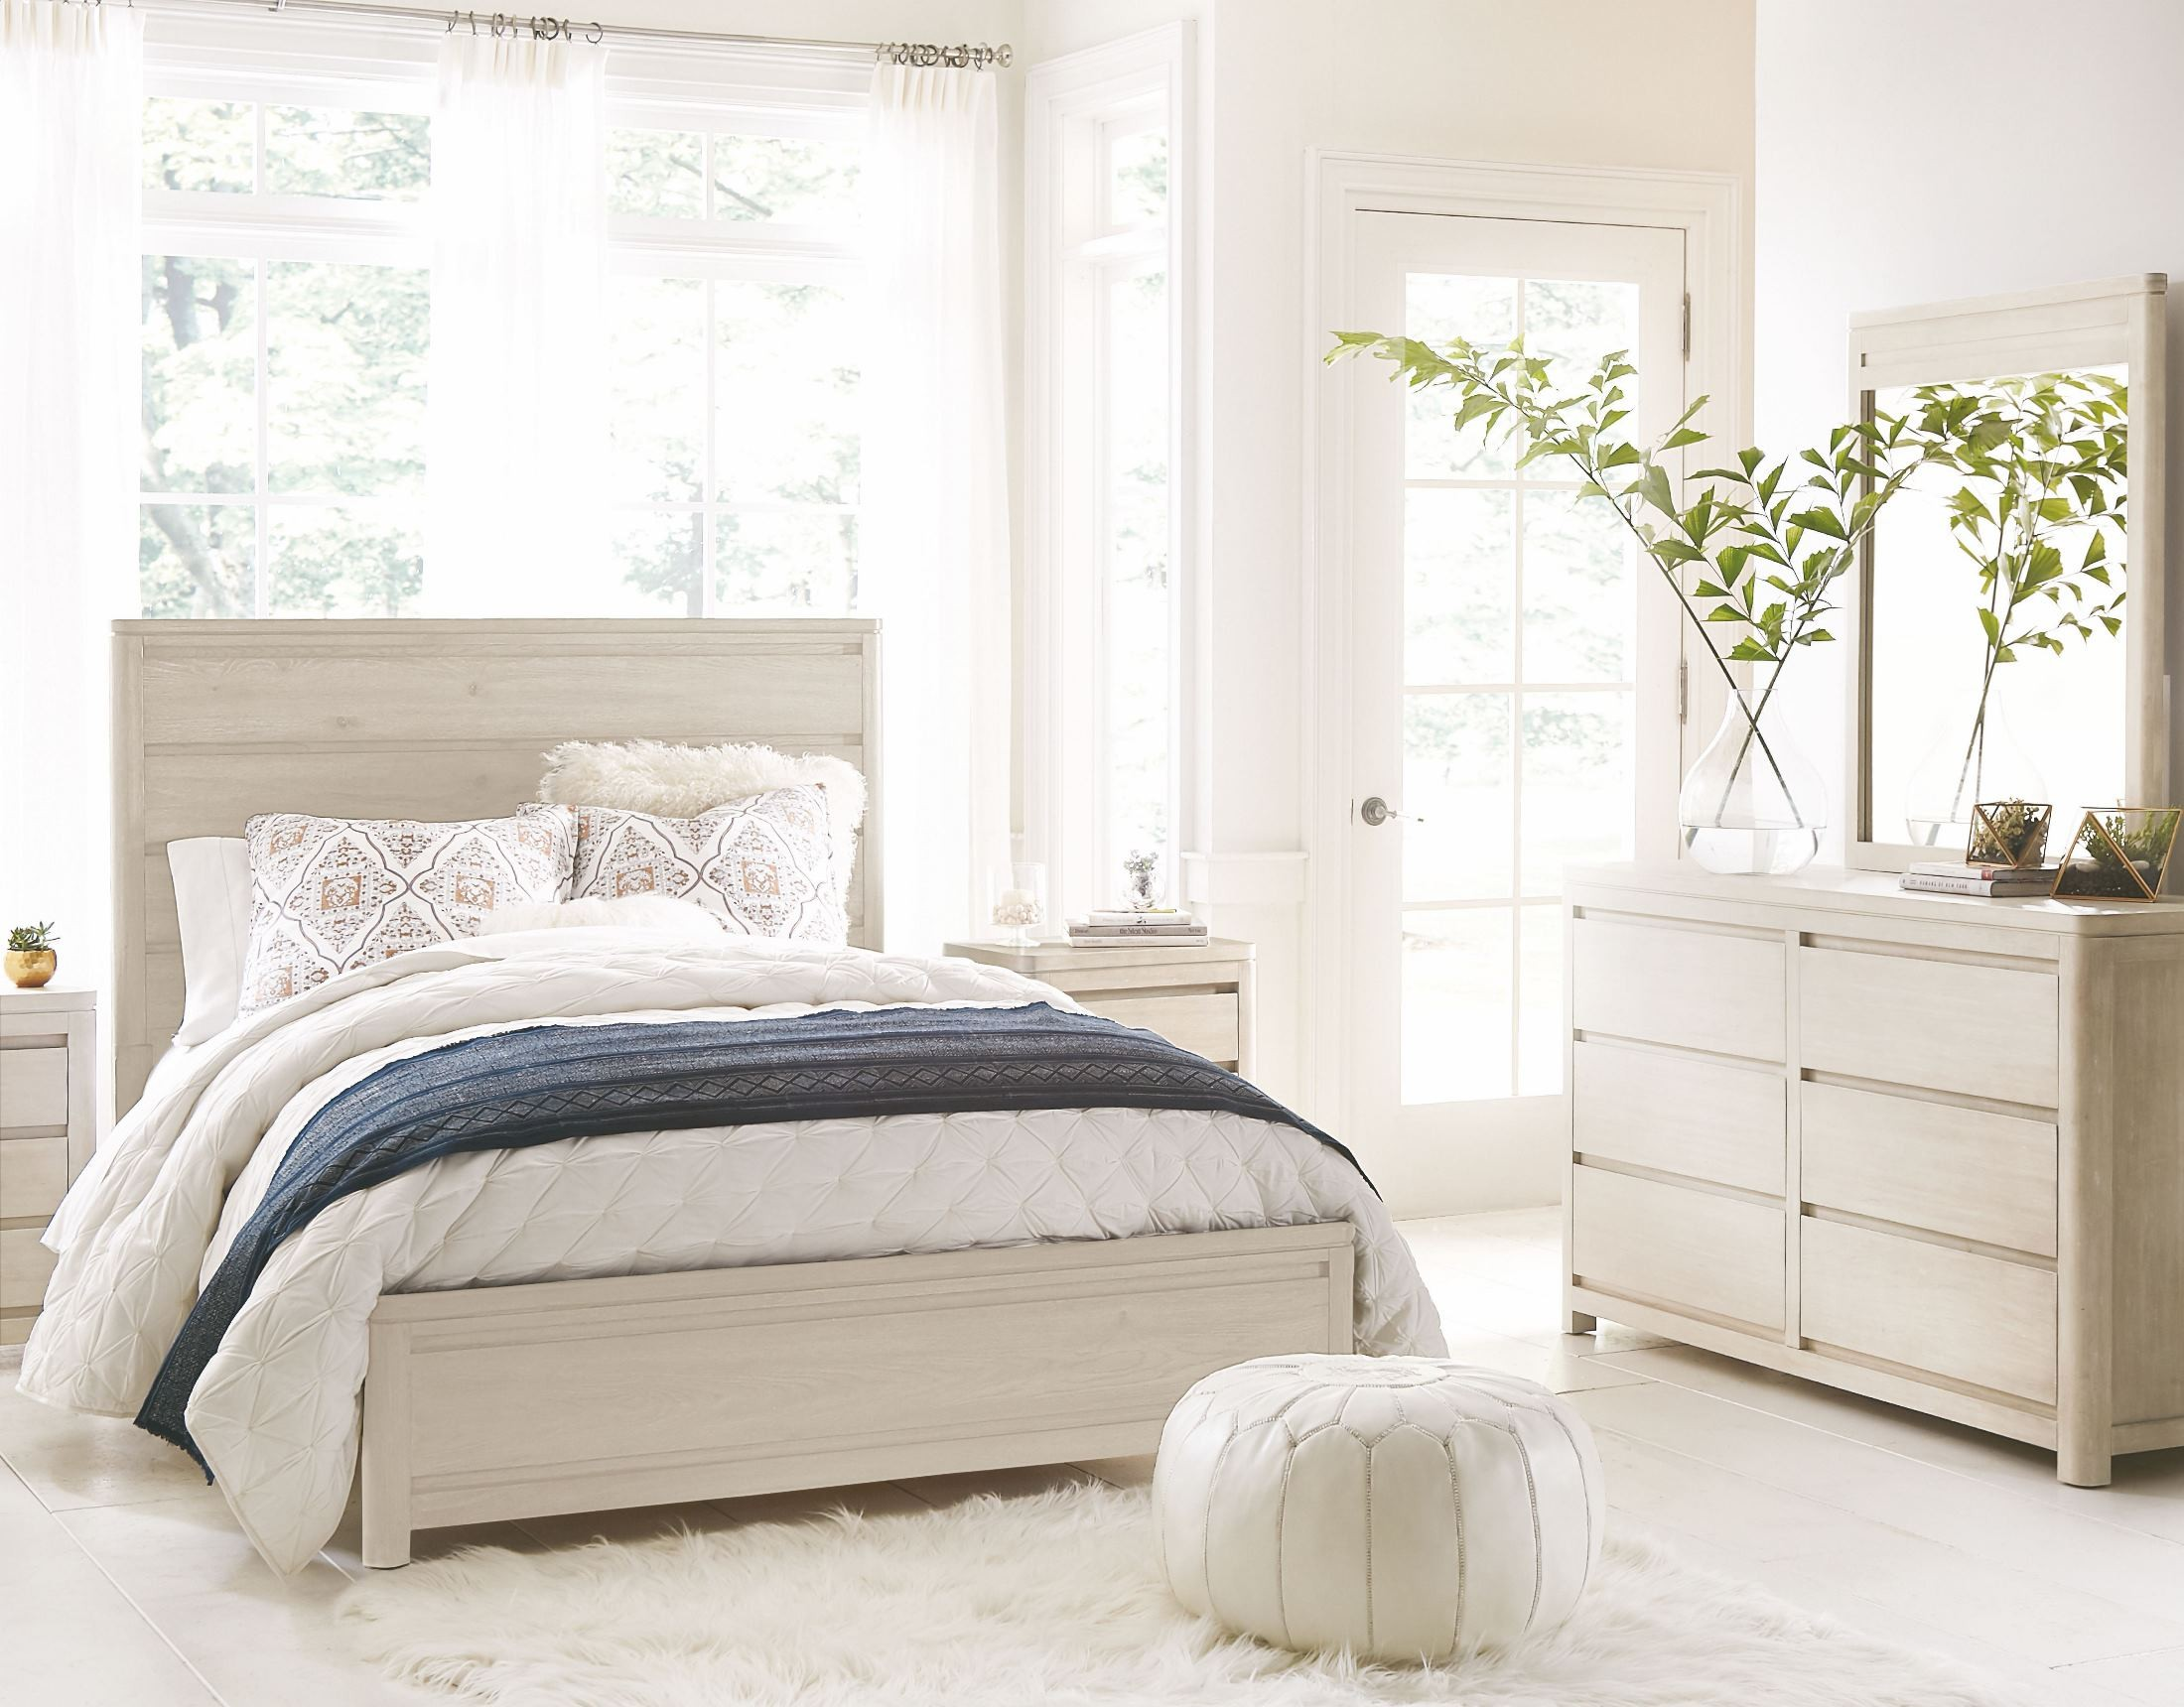 Indio By Wendy Bellissimo White Sand Panel Bedroom Set 6811 4105k Legacy Classic